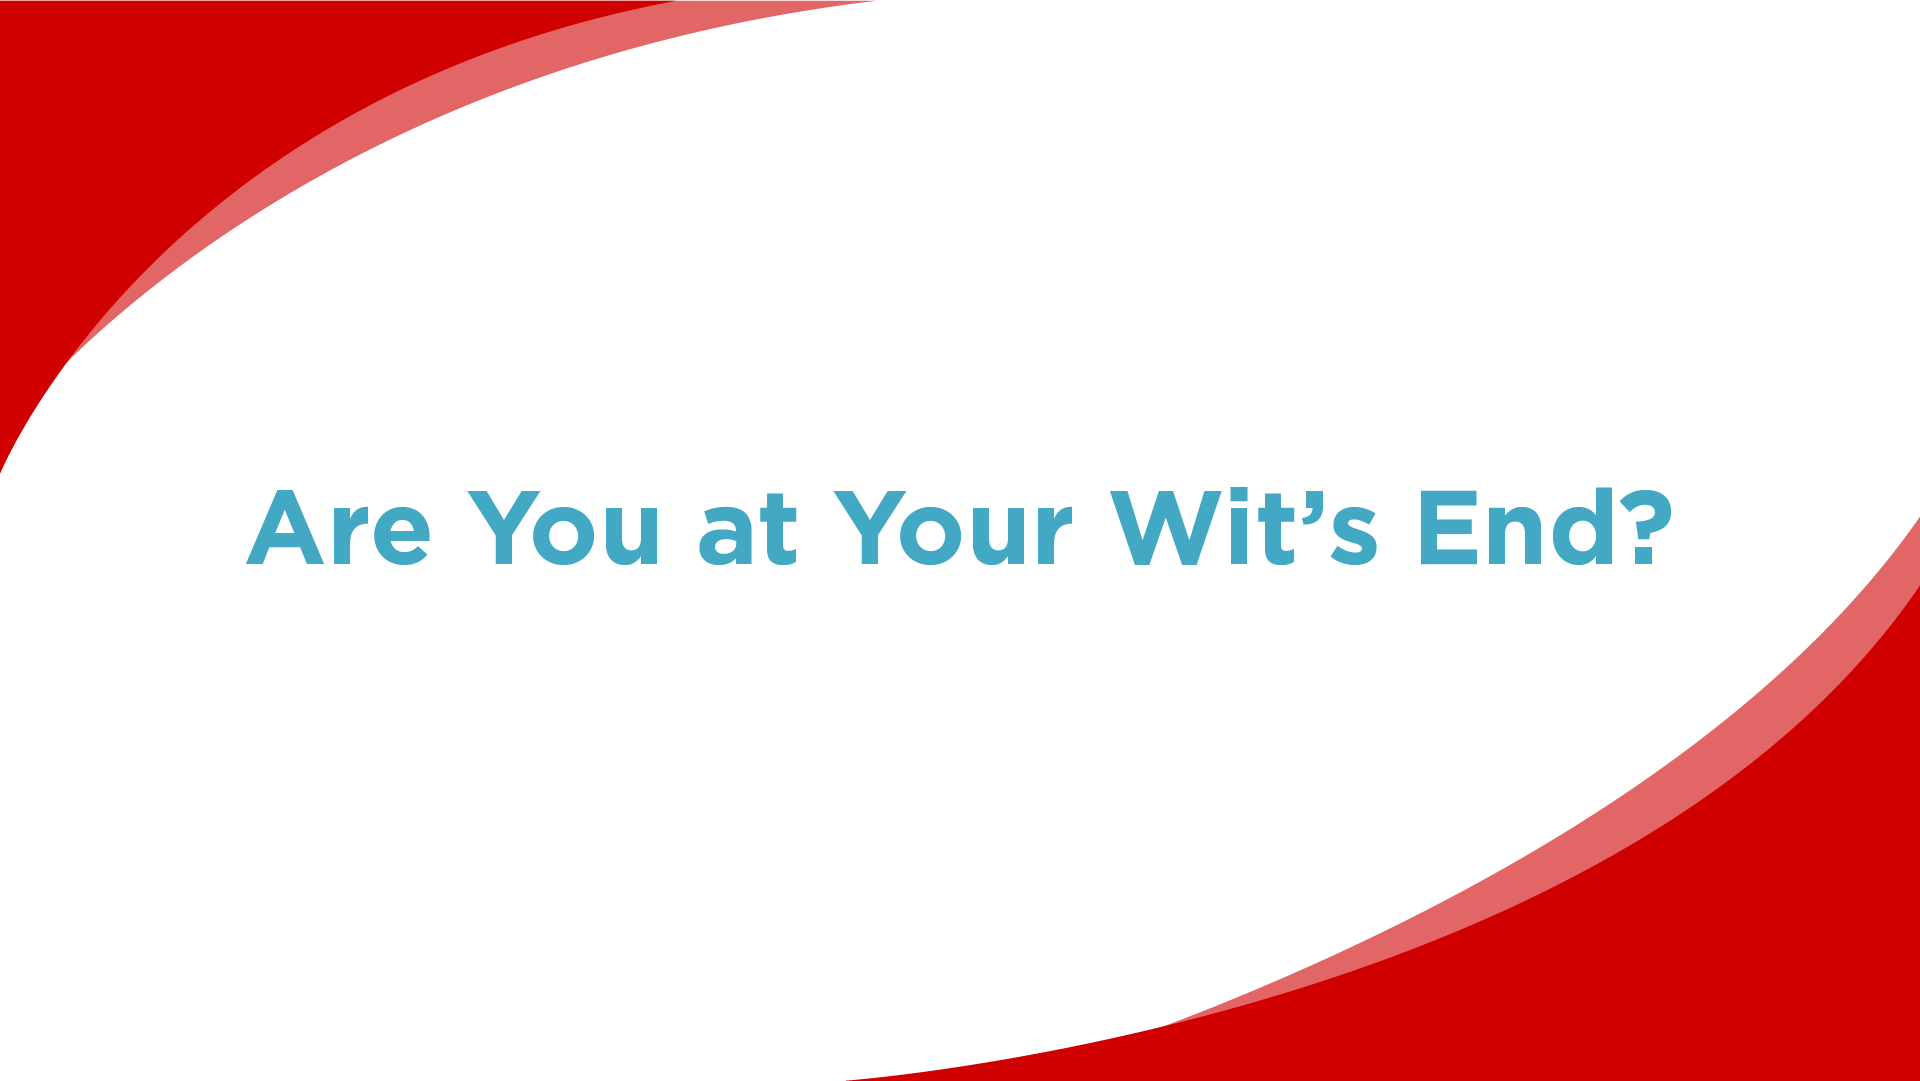 Are You at Your Wit's End?